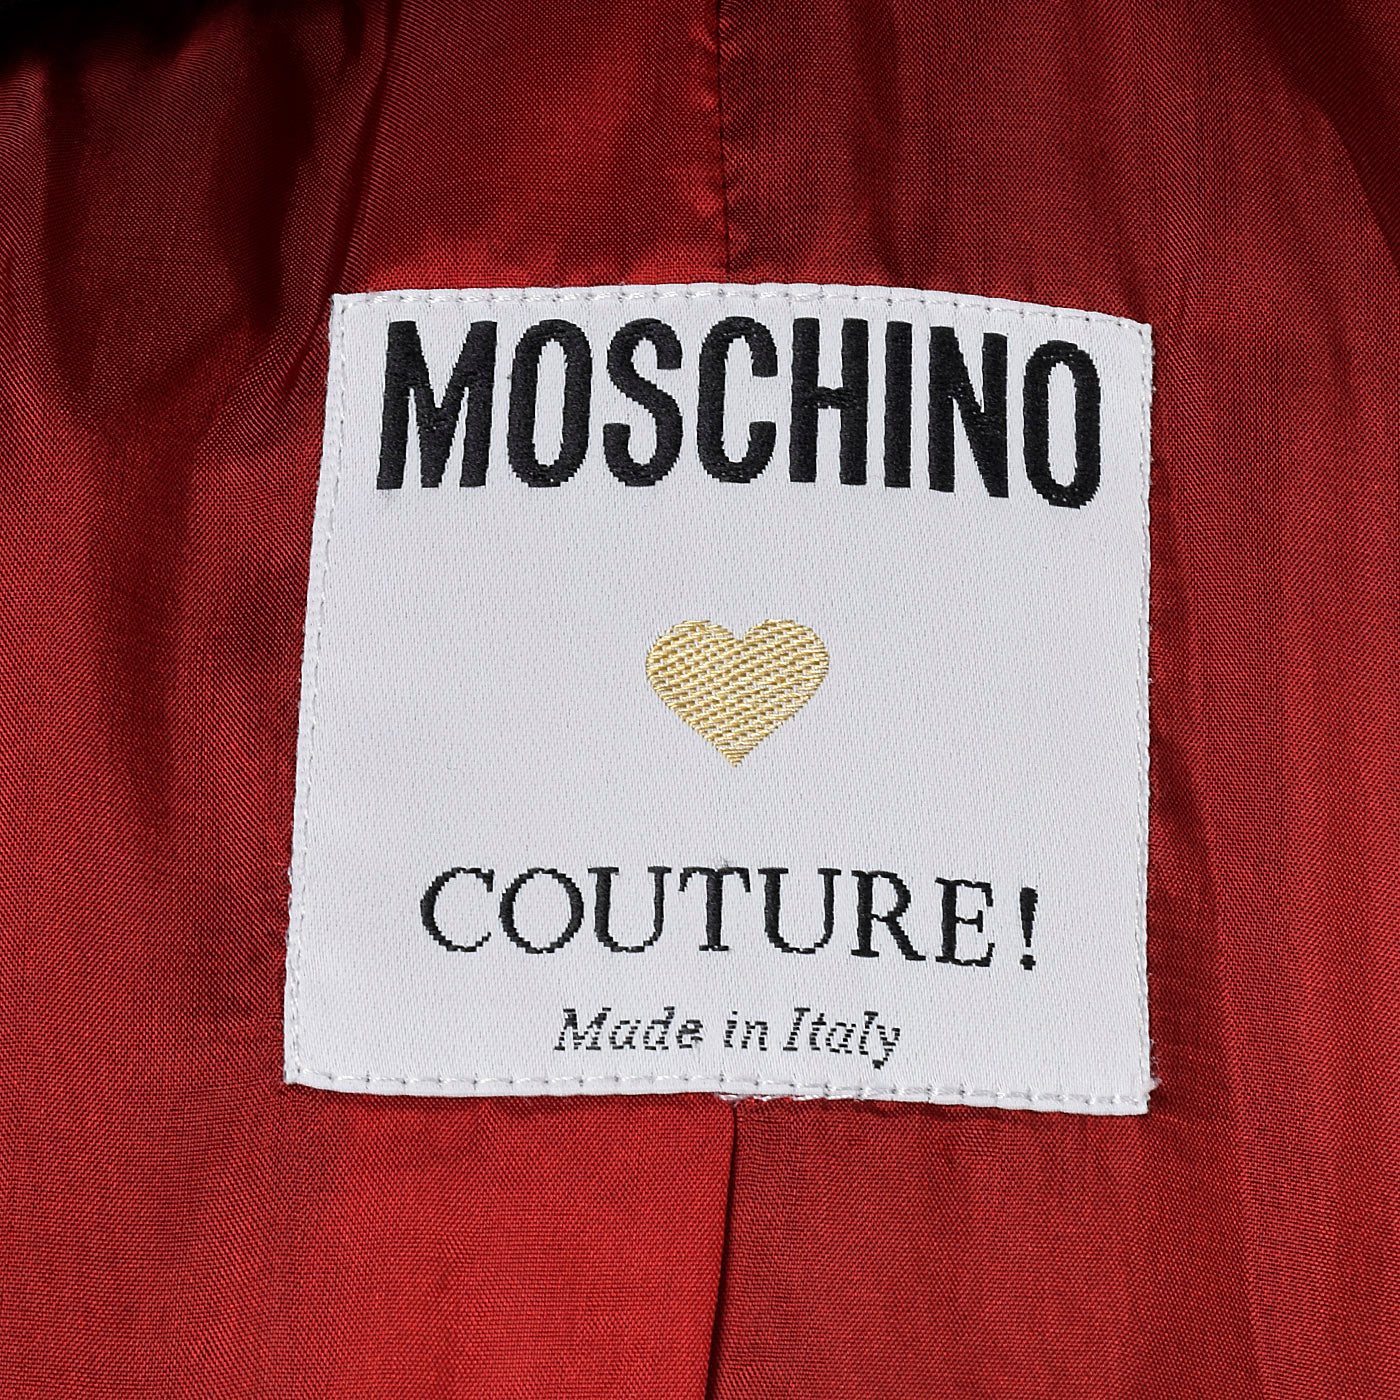 2000s Moschino Couture Mod Target Jacket